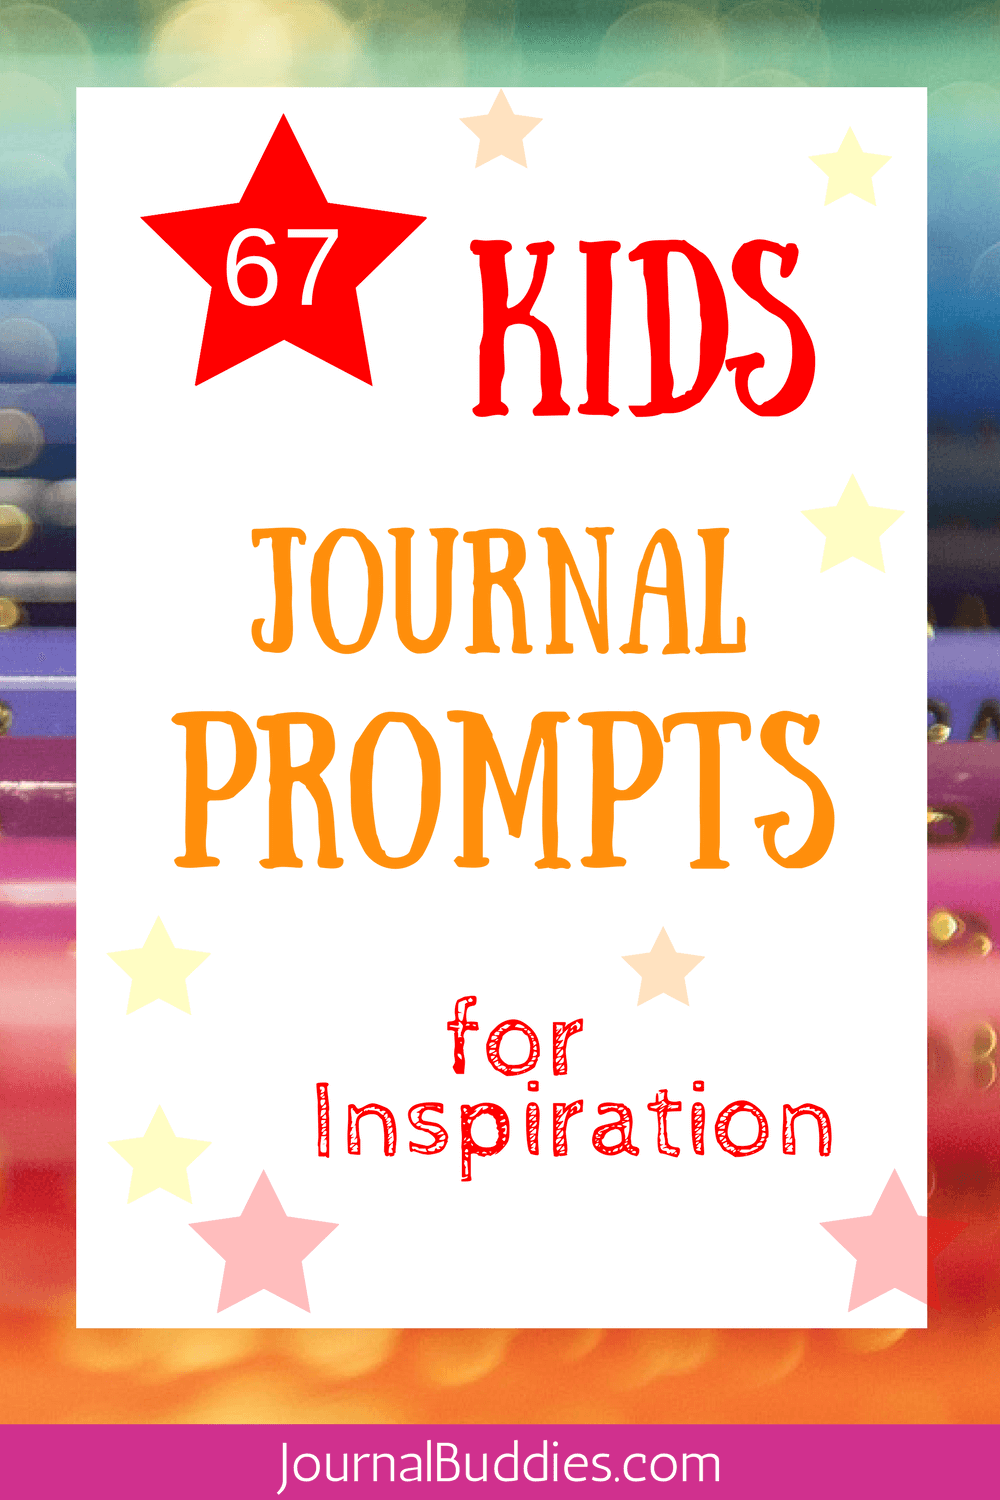 Journal Prompts for Inspiration